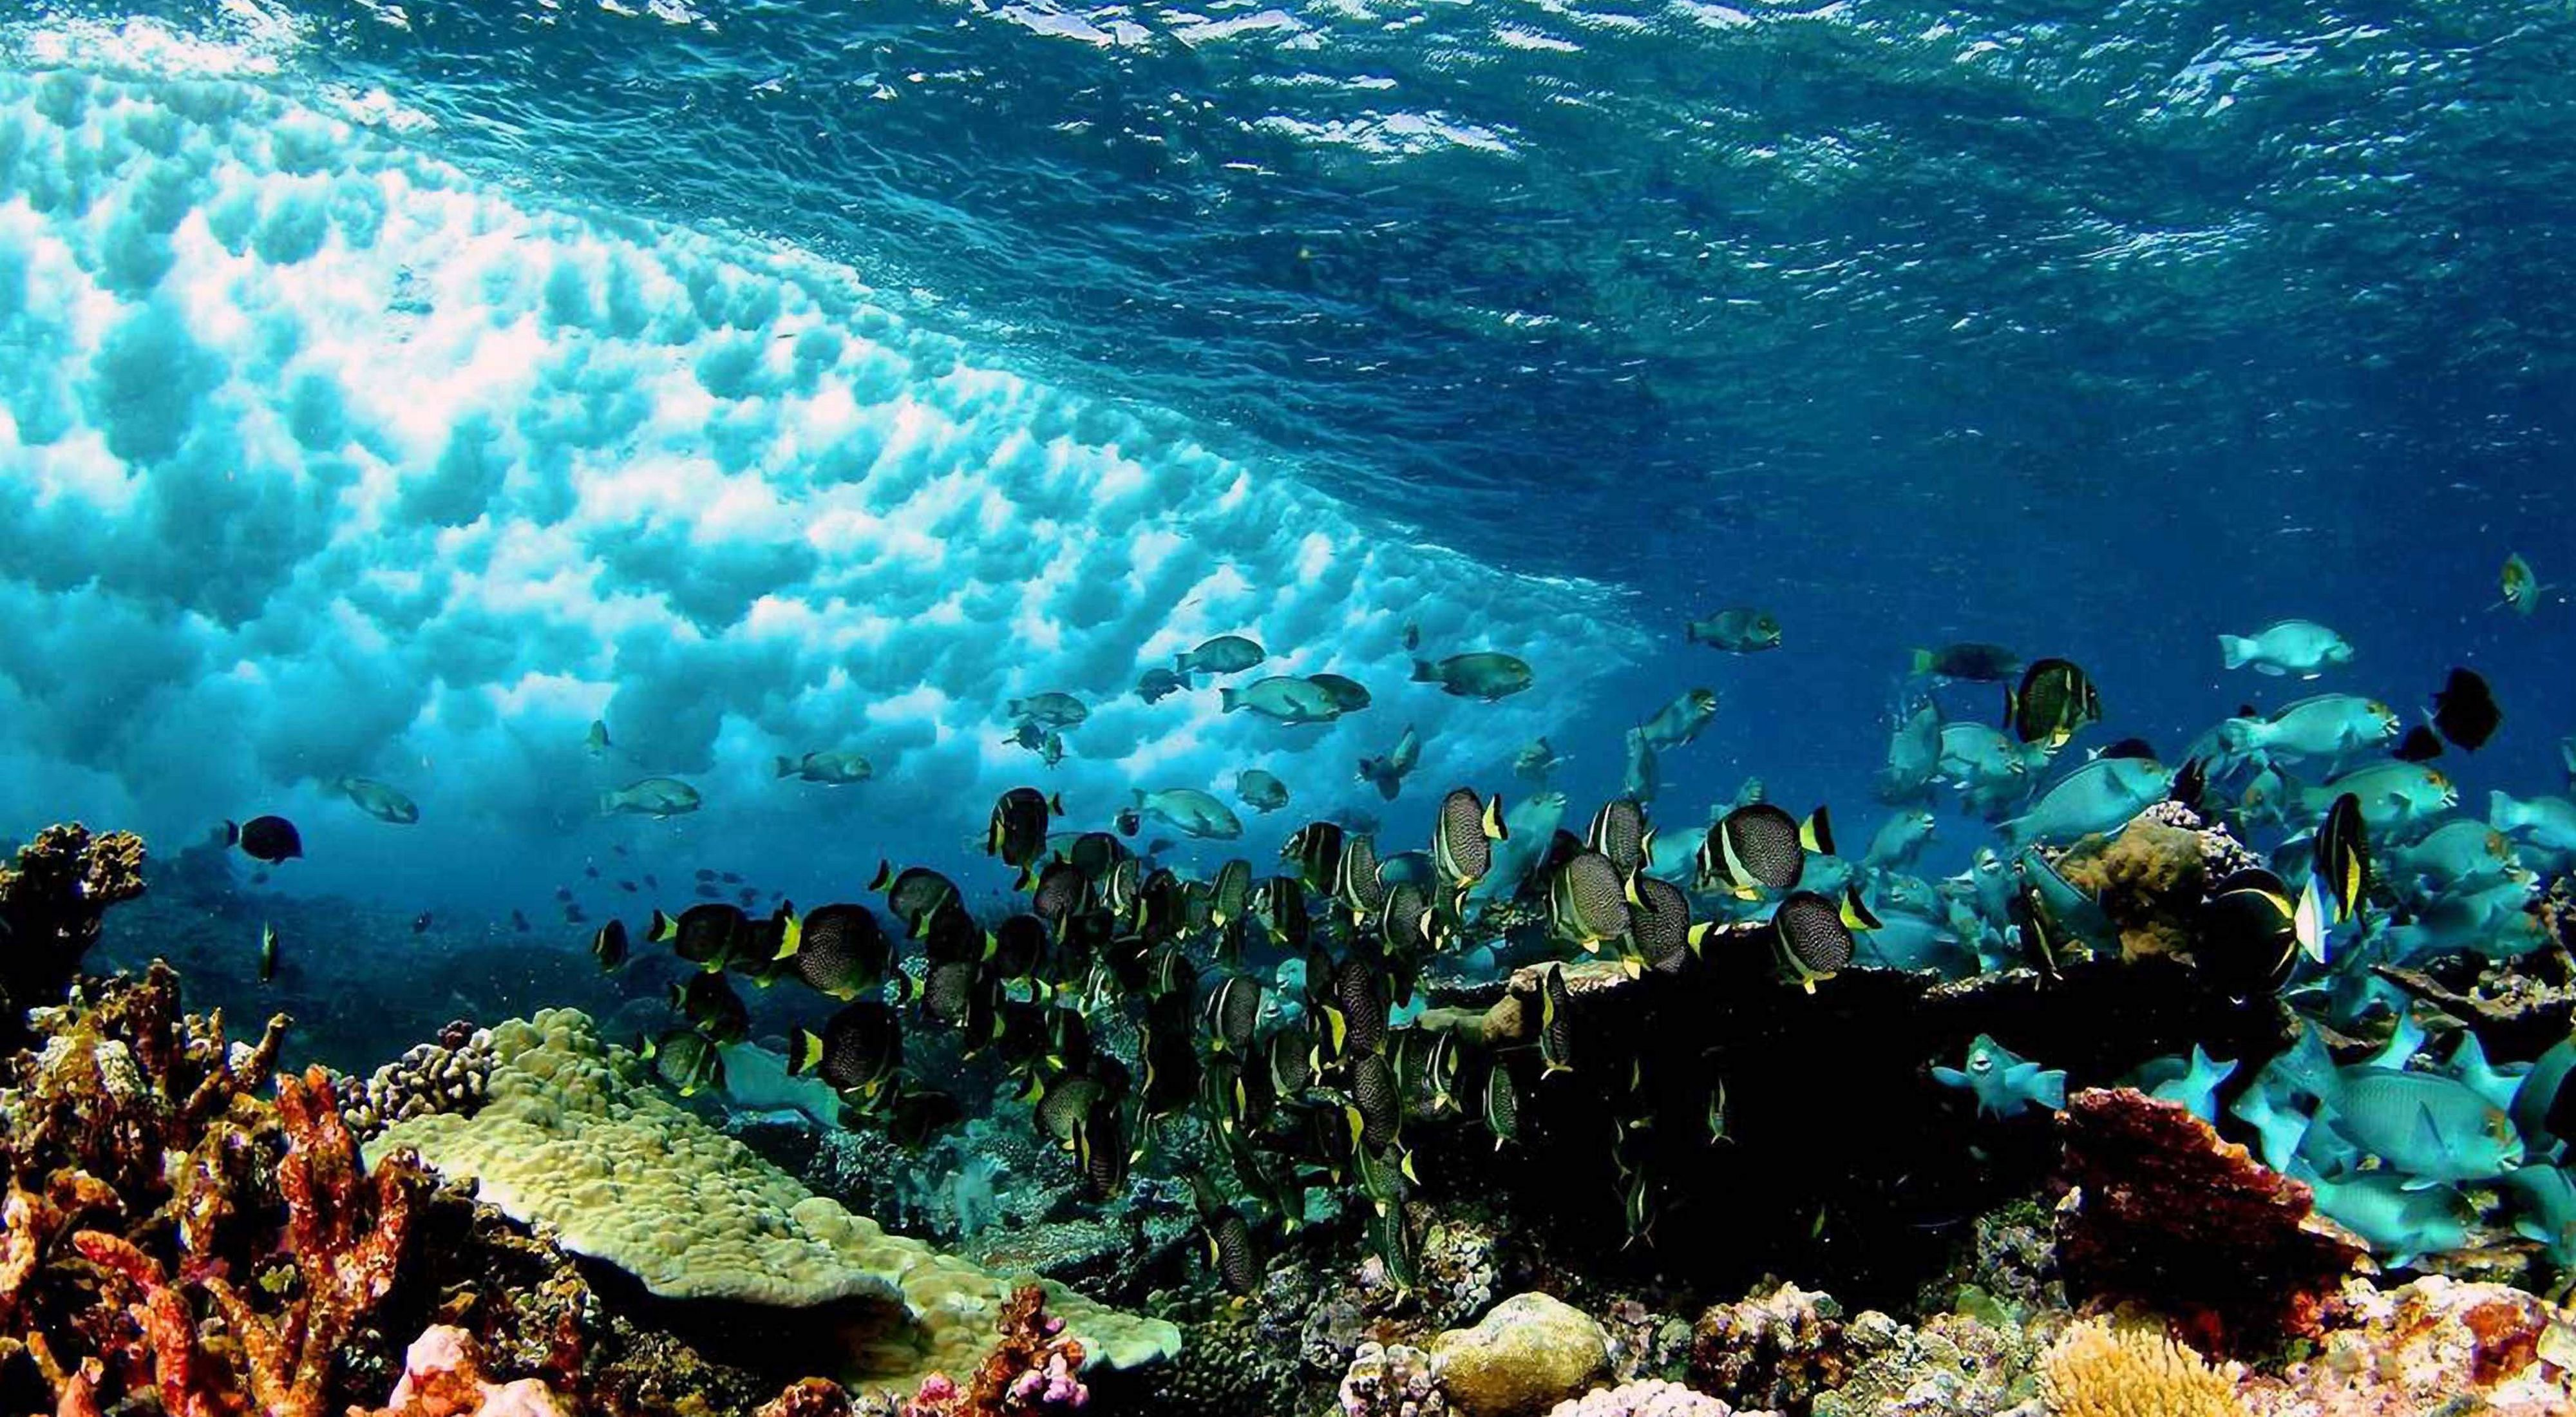 Coral reefs serve as natural sea walls, diminishing wave energy by up to 97%